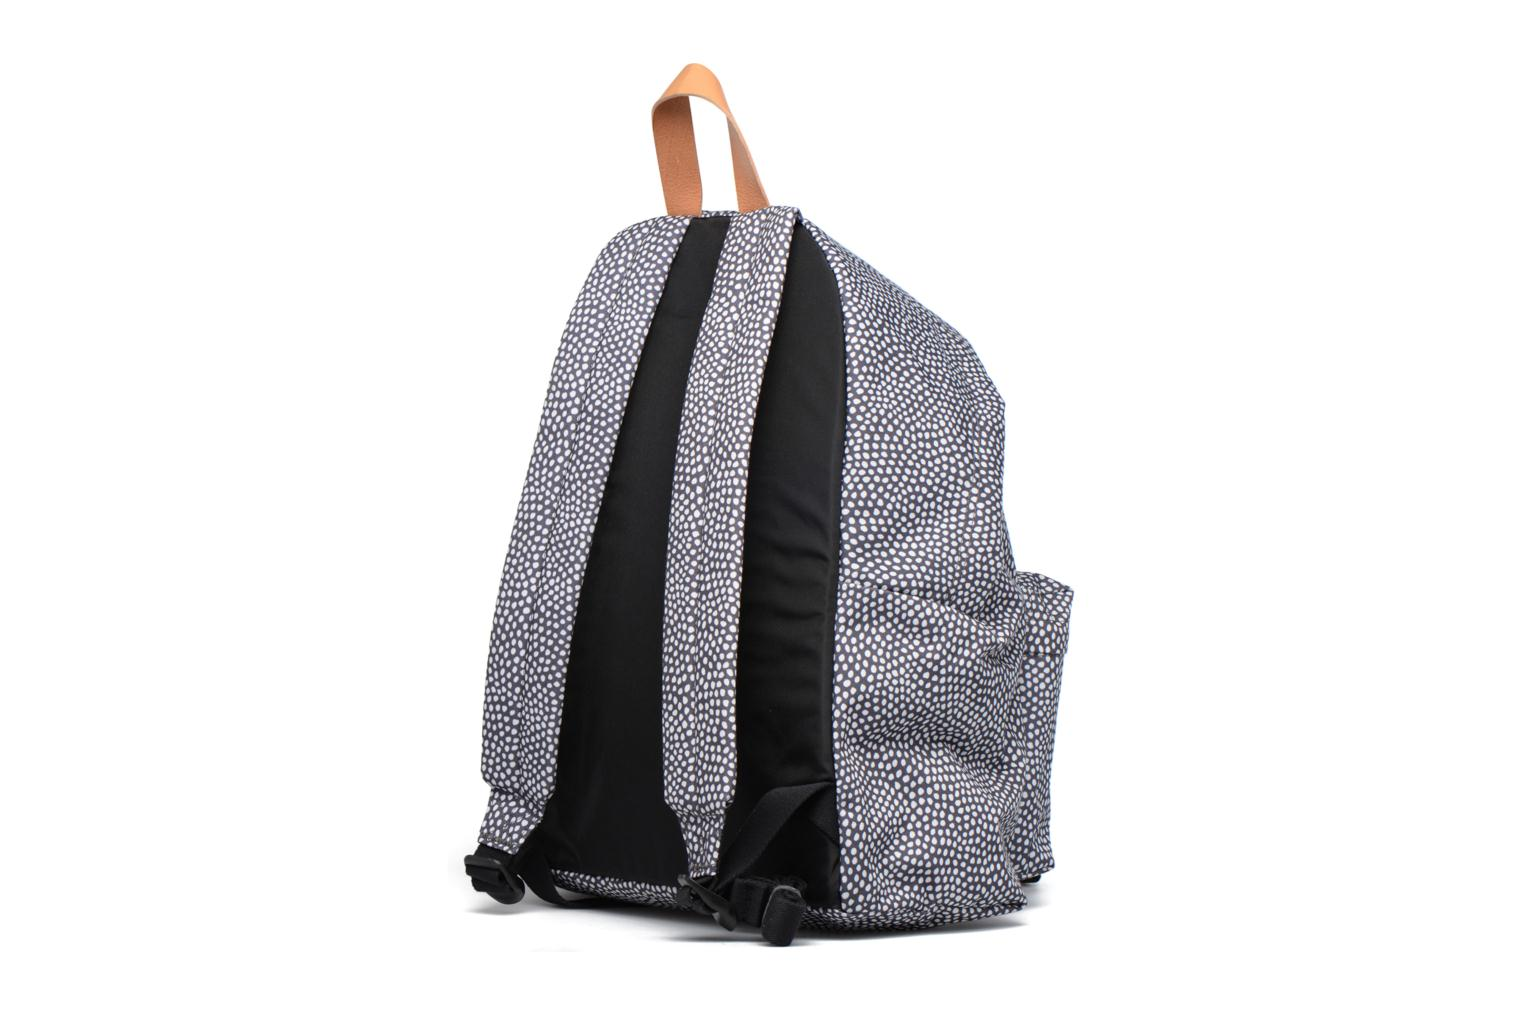 PADDED PACK'R Sac à dos toile Spot